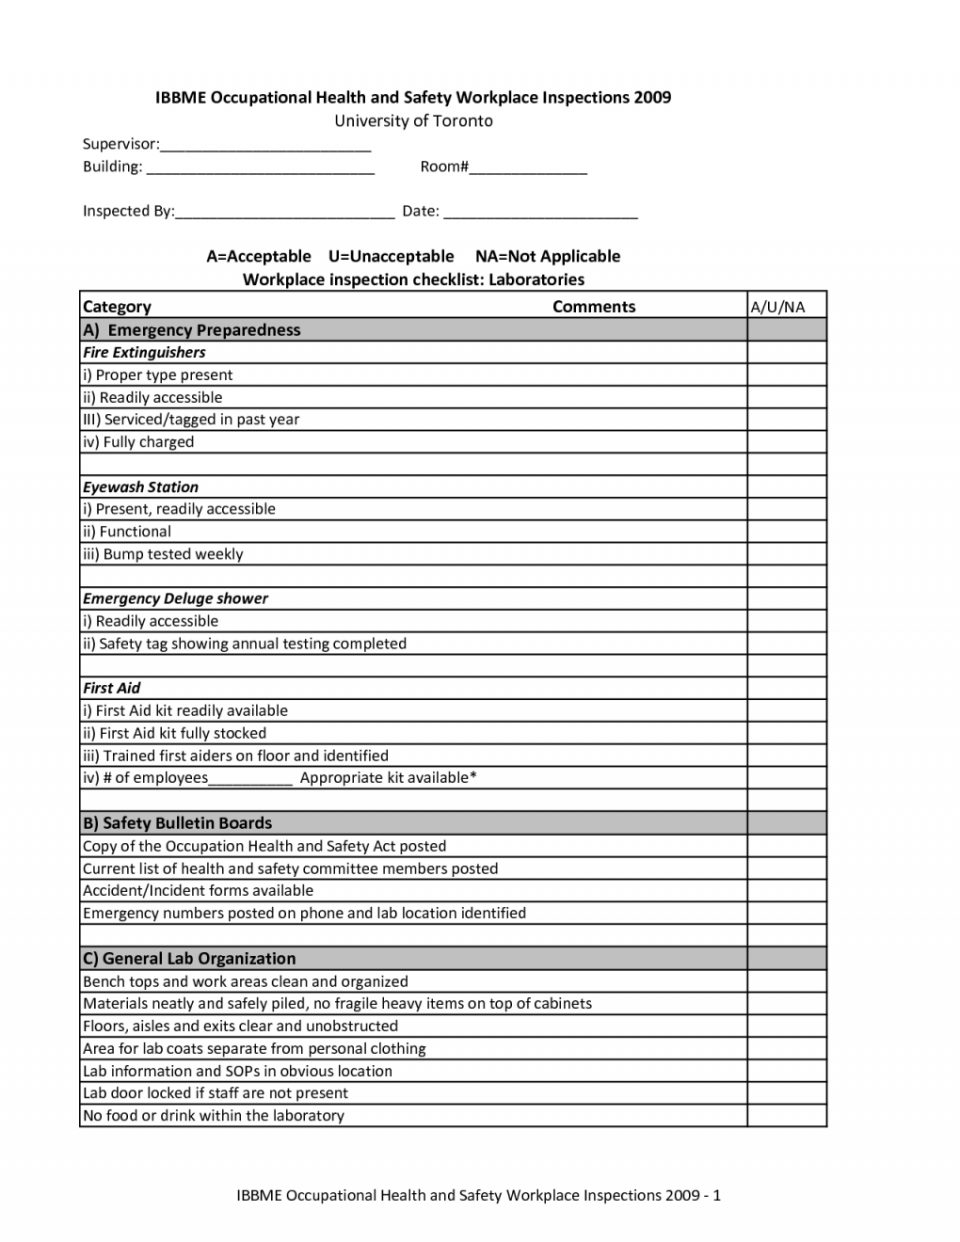 Monthly Eyewash Inspection Form